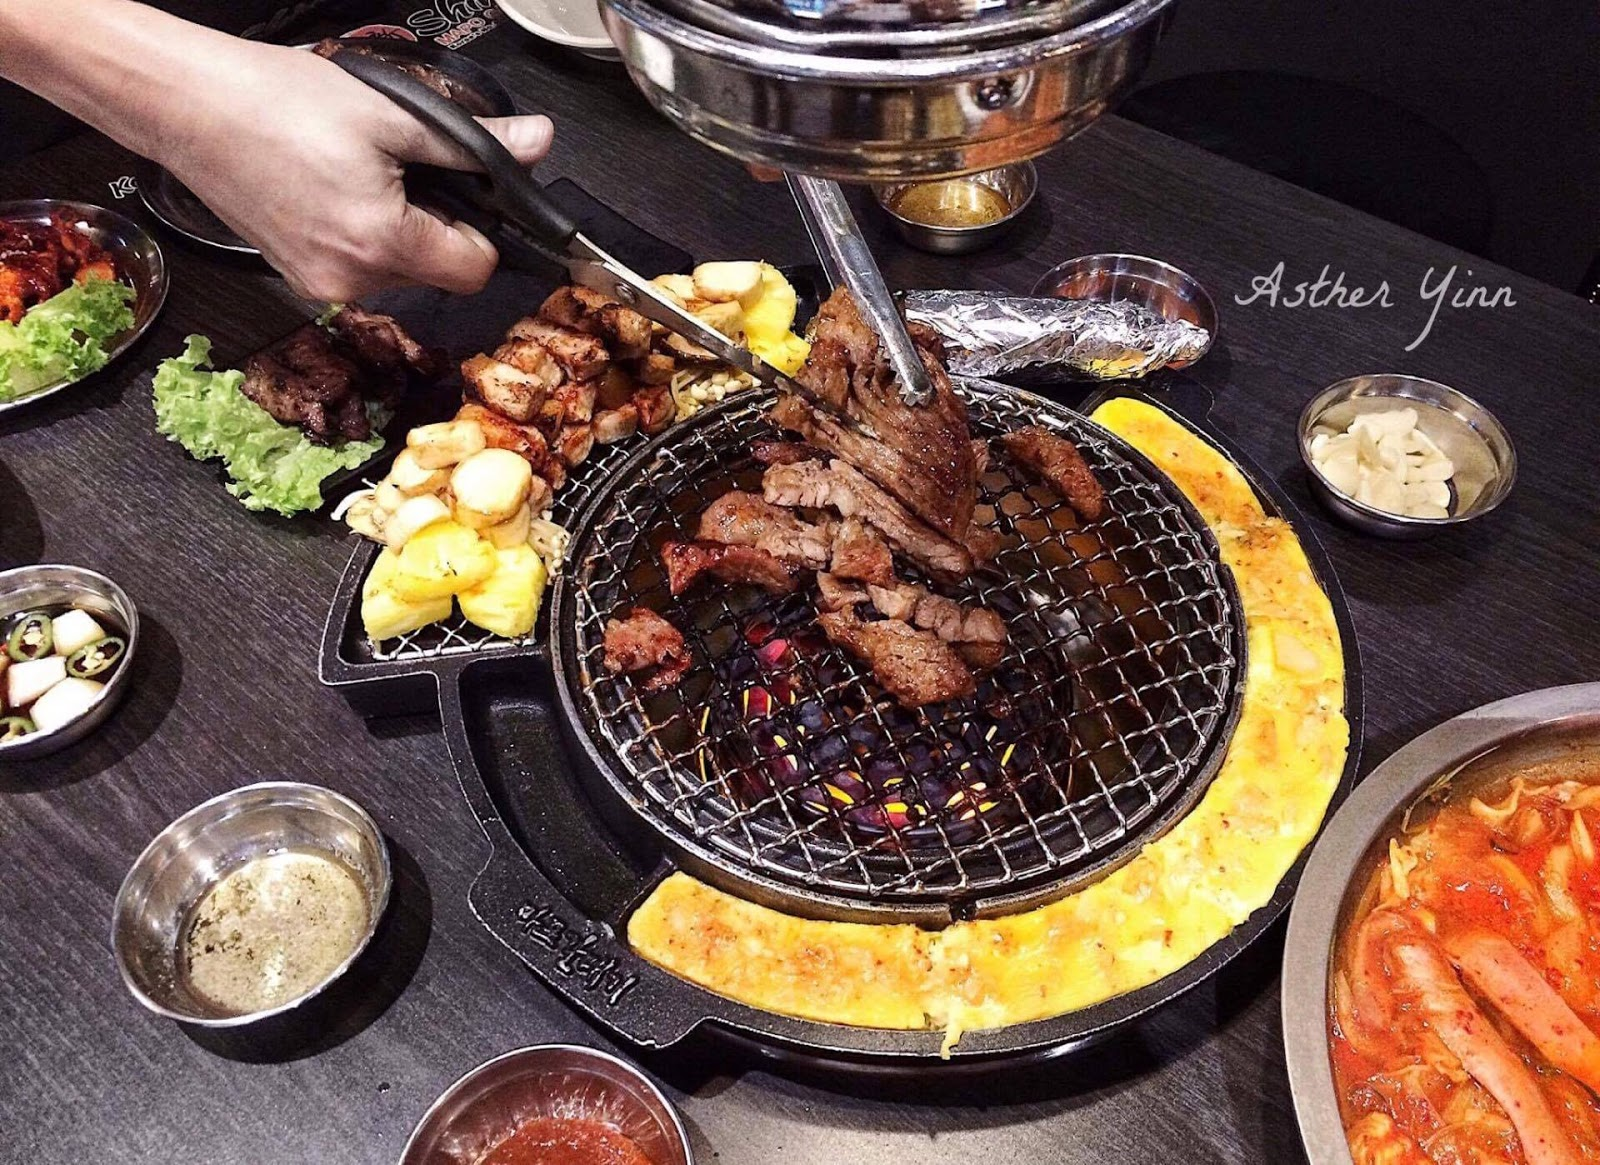 Asther yinn shinmapo mapo galmaegi korean bbq - How to build a korean bbq table ...